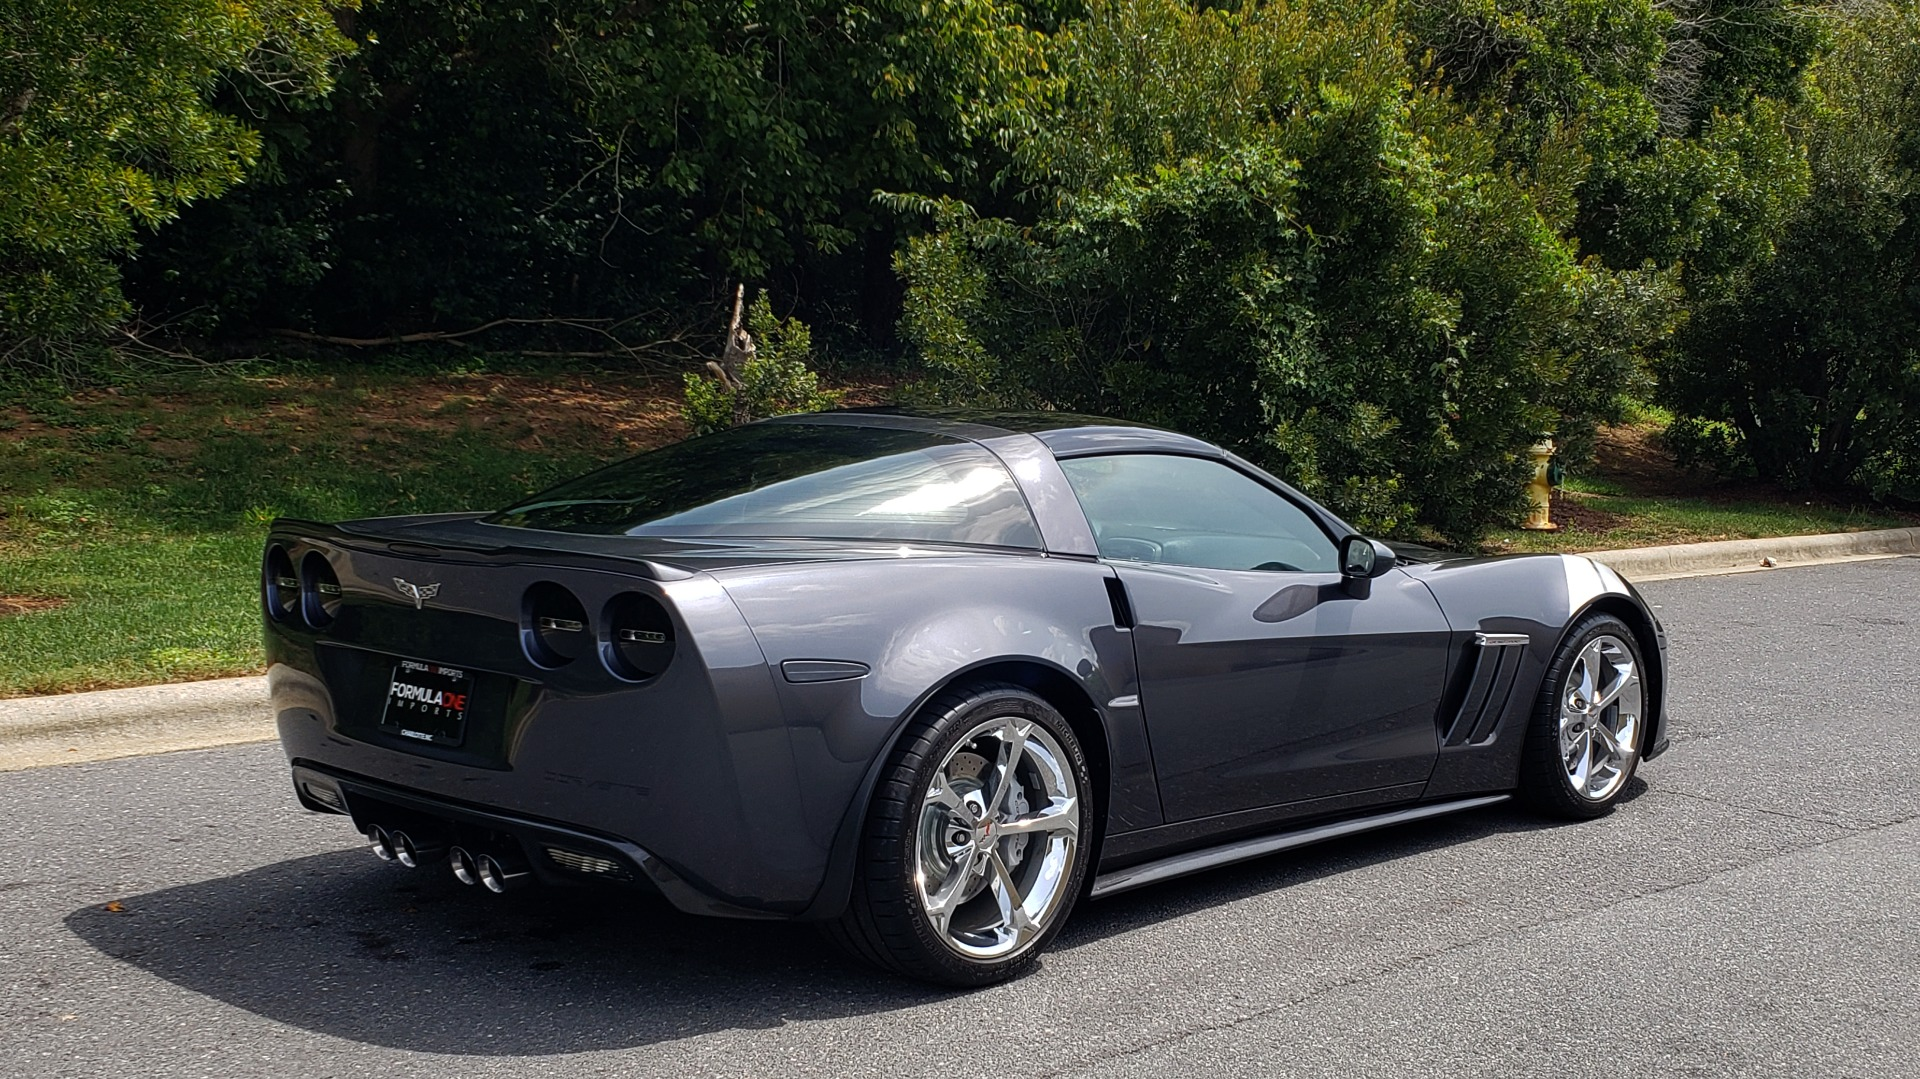 Used 2010 Chevrolet CORVETTE Z16 GRAND SPORT 3LT / HUD / 6.2L V8 / 6-SPD AUTO / NPP EXH for sale Sold at Formula Imports in Charlotte NC 28227 5